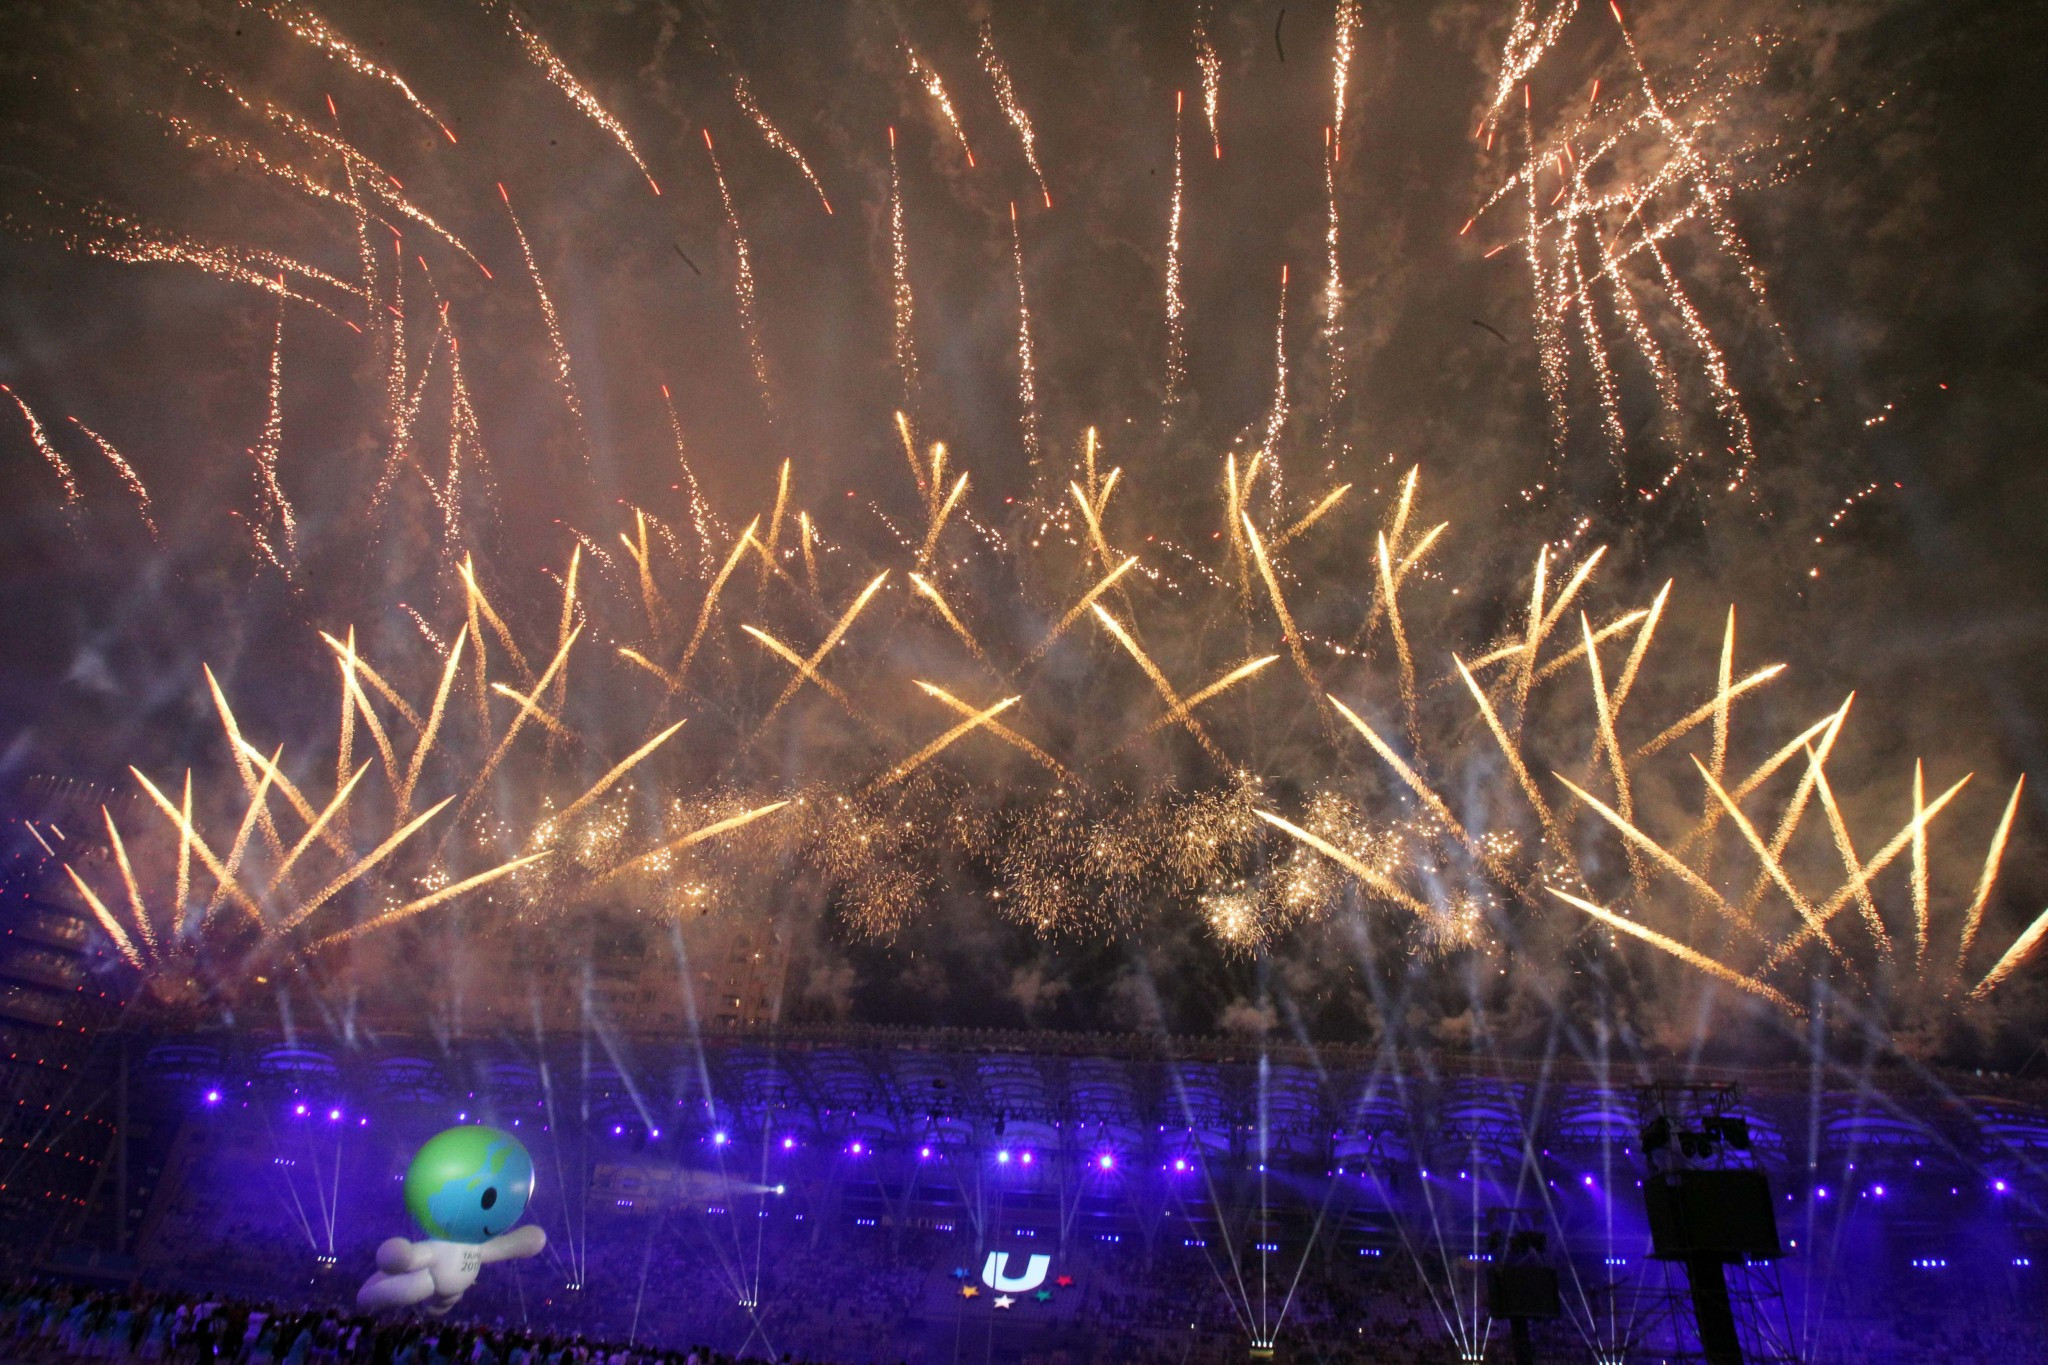 The Taipei 2017 Summer Universiade officially concluded this evening ©Taipei 2017